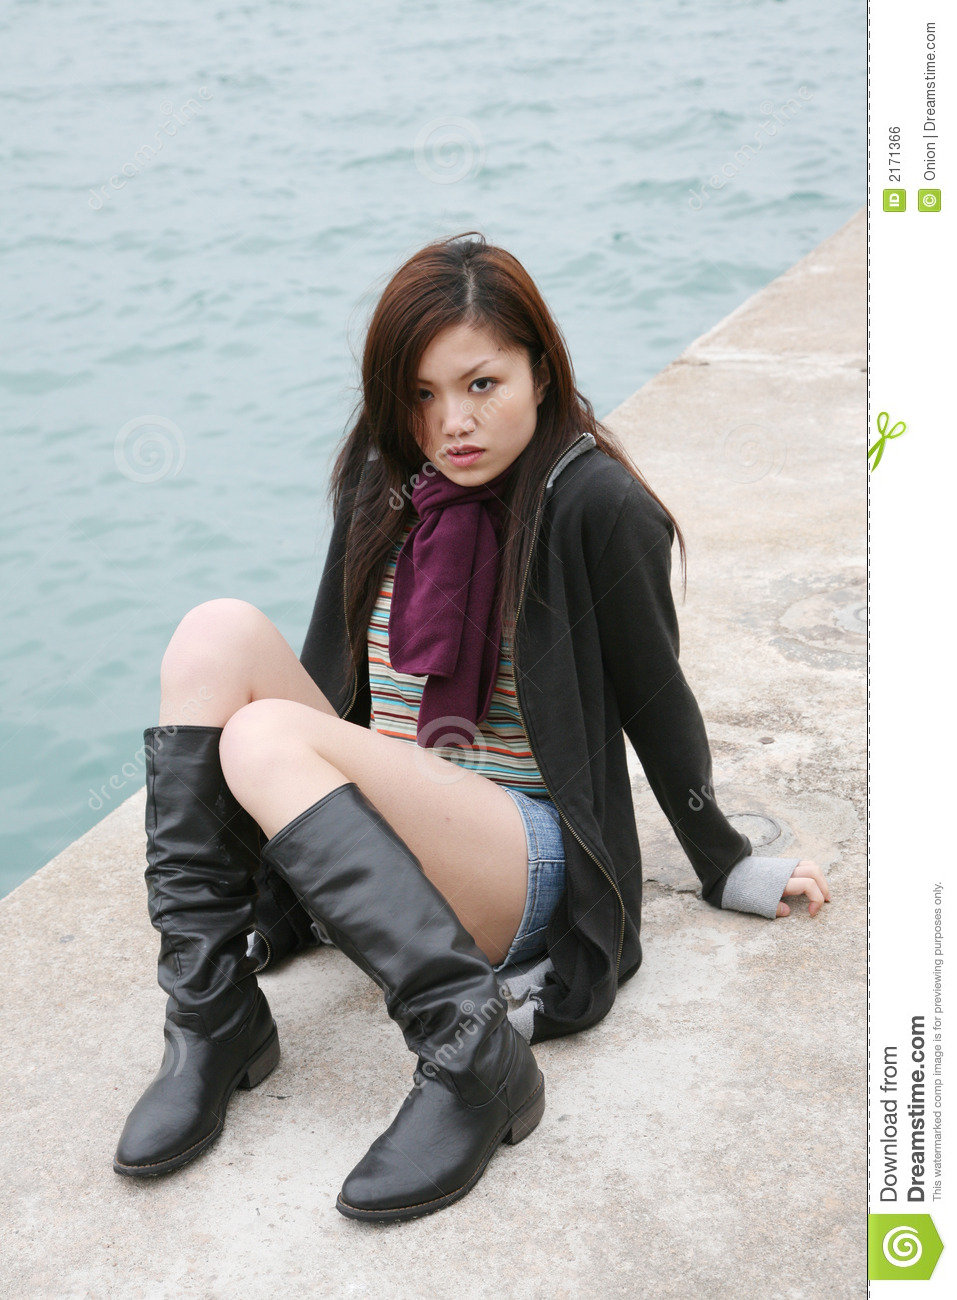 Unfortunately! congratulate, asian girl in high boots you mean?